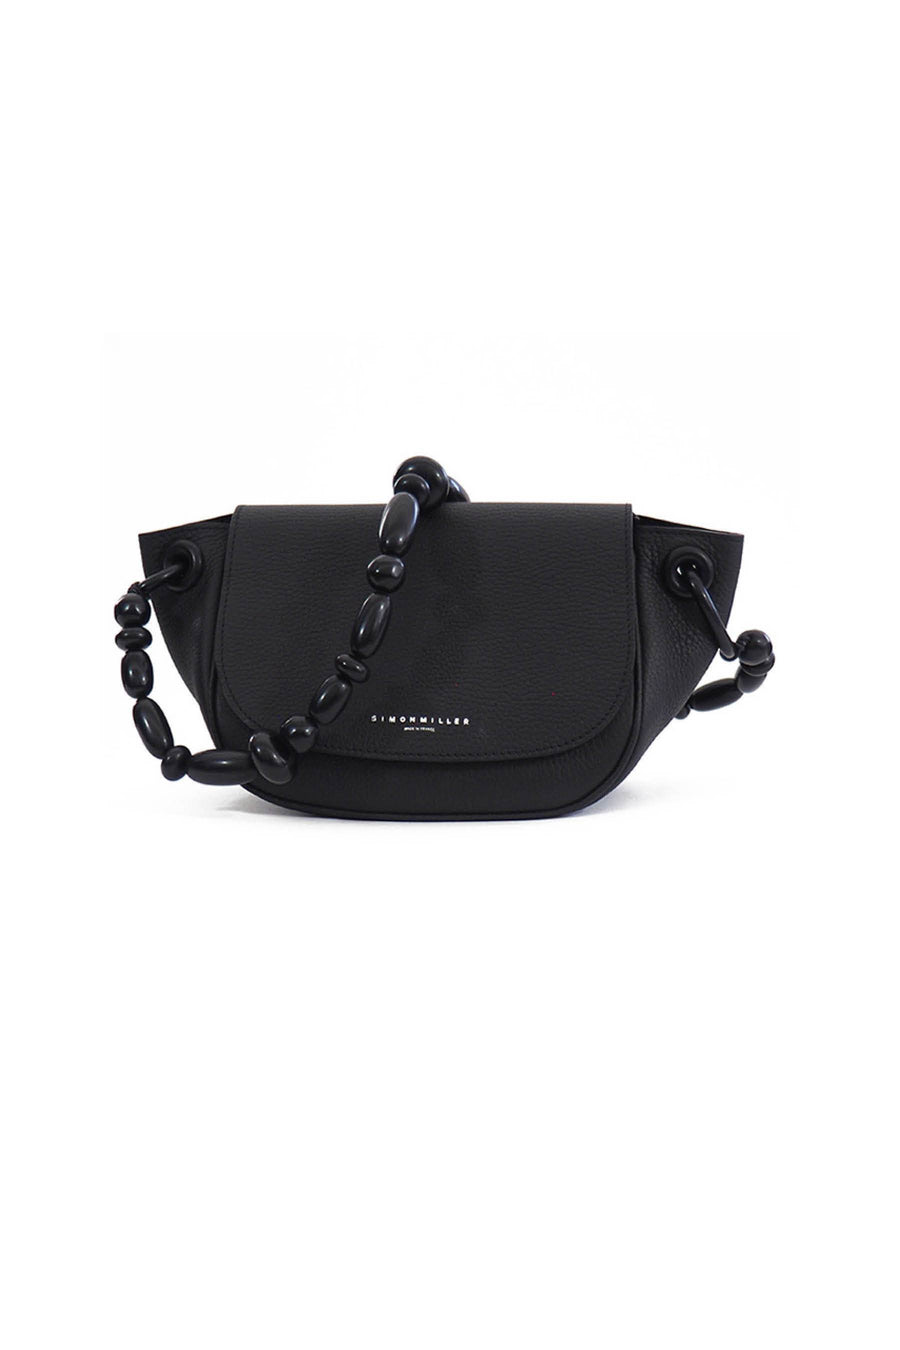 S821 Bend Bag in Black - Bead Strap